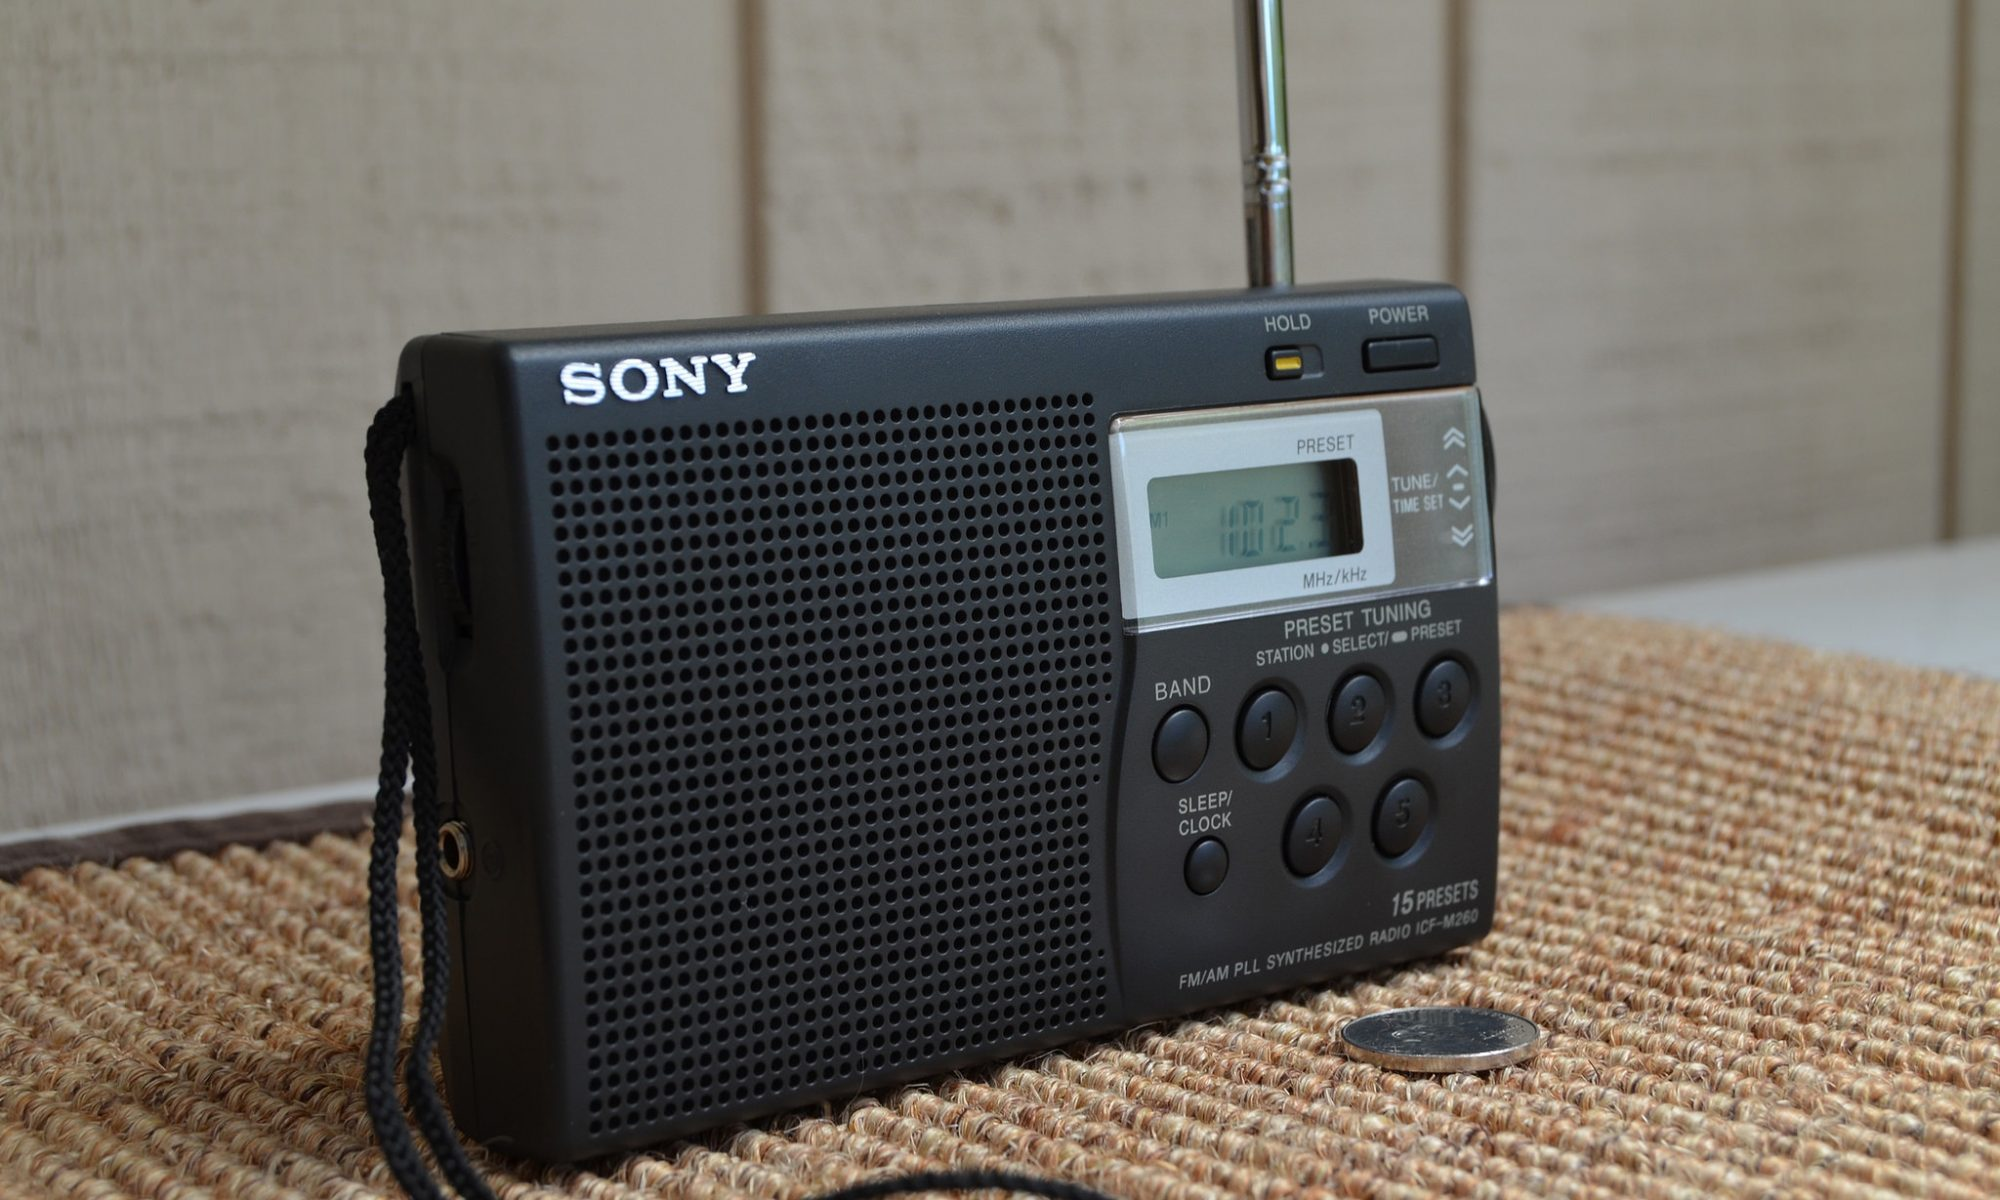 Radio https://www.flickr.com/photos/capcase/14346544121 CC BY 2.0